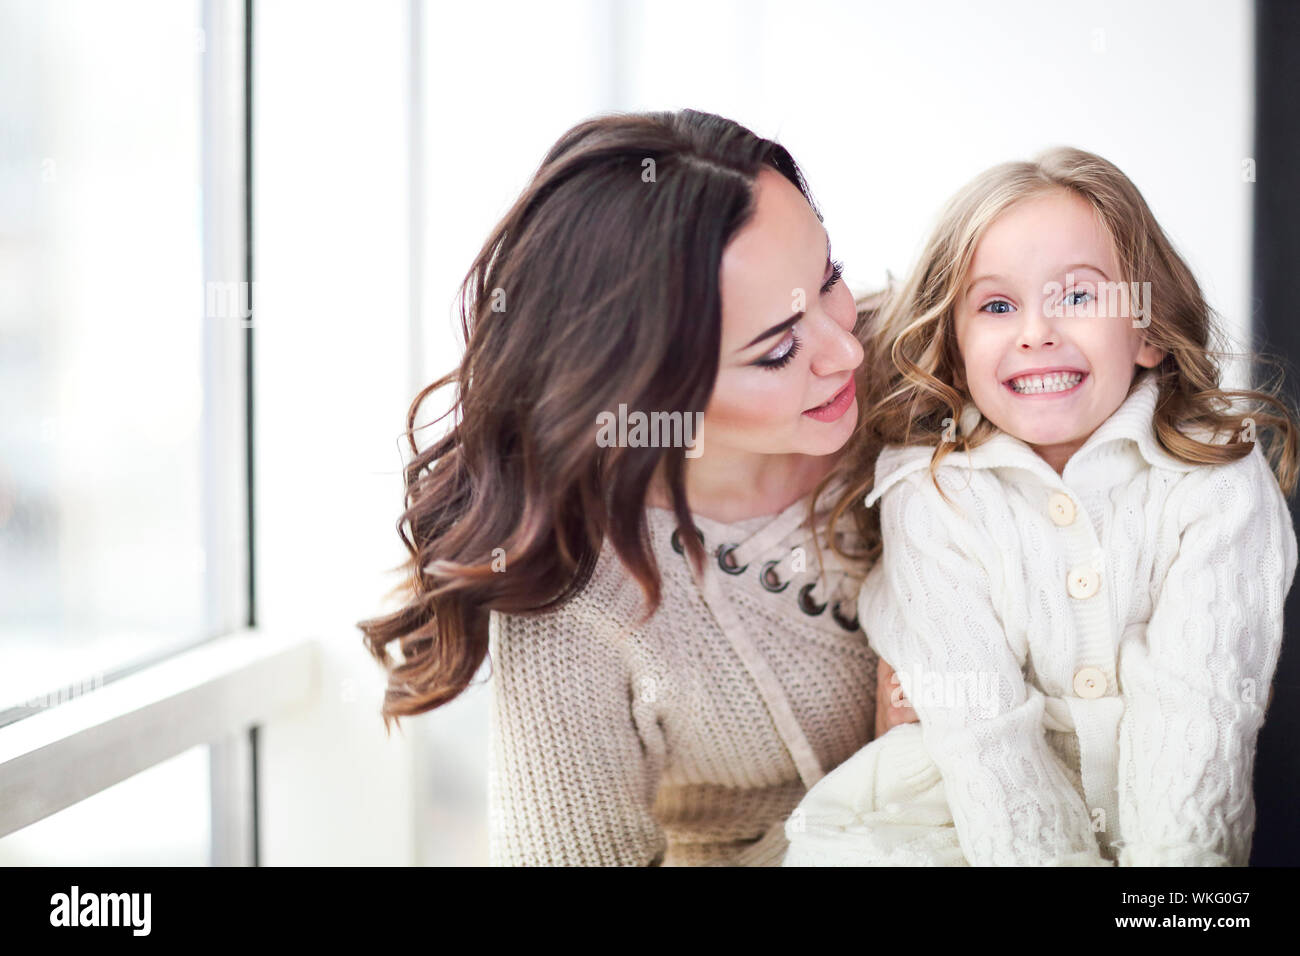 Happy loving family together. Mother and child daughter hugging by the window wearing cozy sweaters Stock Photo